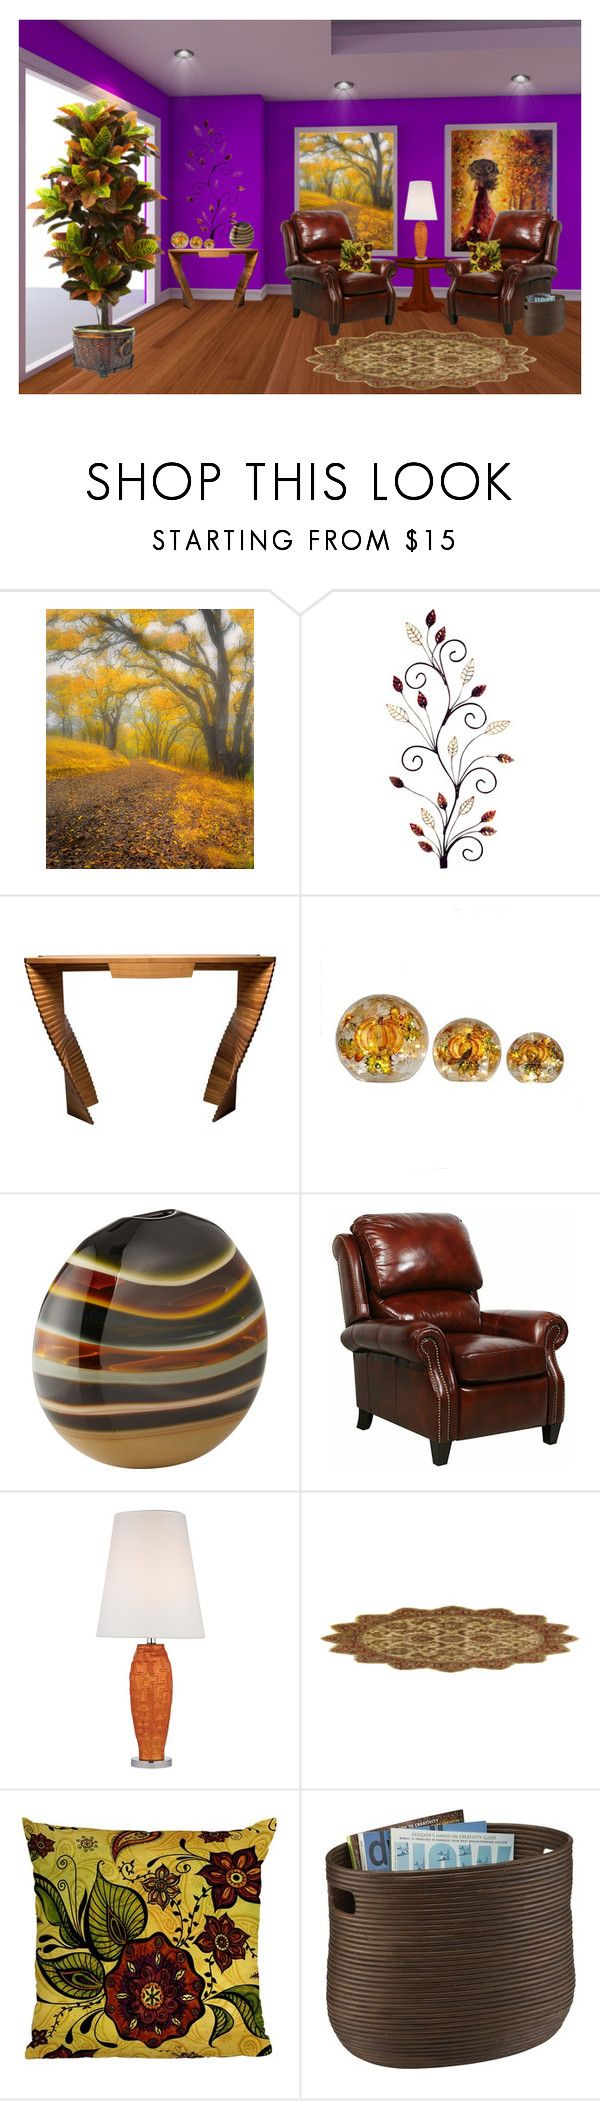 """""""No Place Like Home... Autumn Decor 2"""" by marvy1 ❤ liked on Polyvore featuring interior, interiors, interior design, home, home decor, interior decorating, Caleb Siemon, BarcaLounger, Dimond and DENY Designs"""